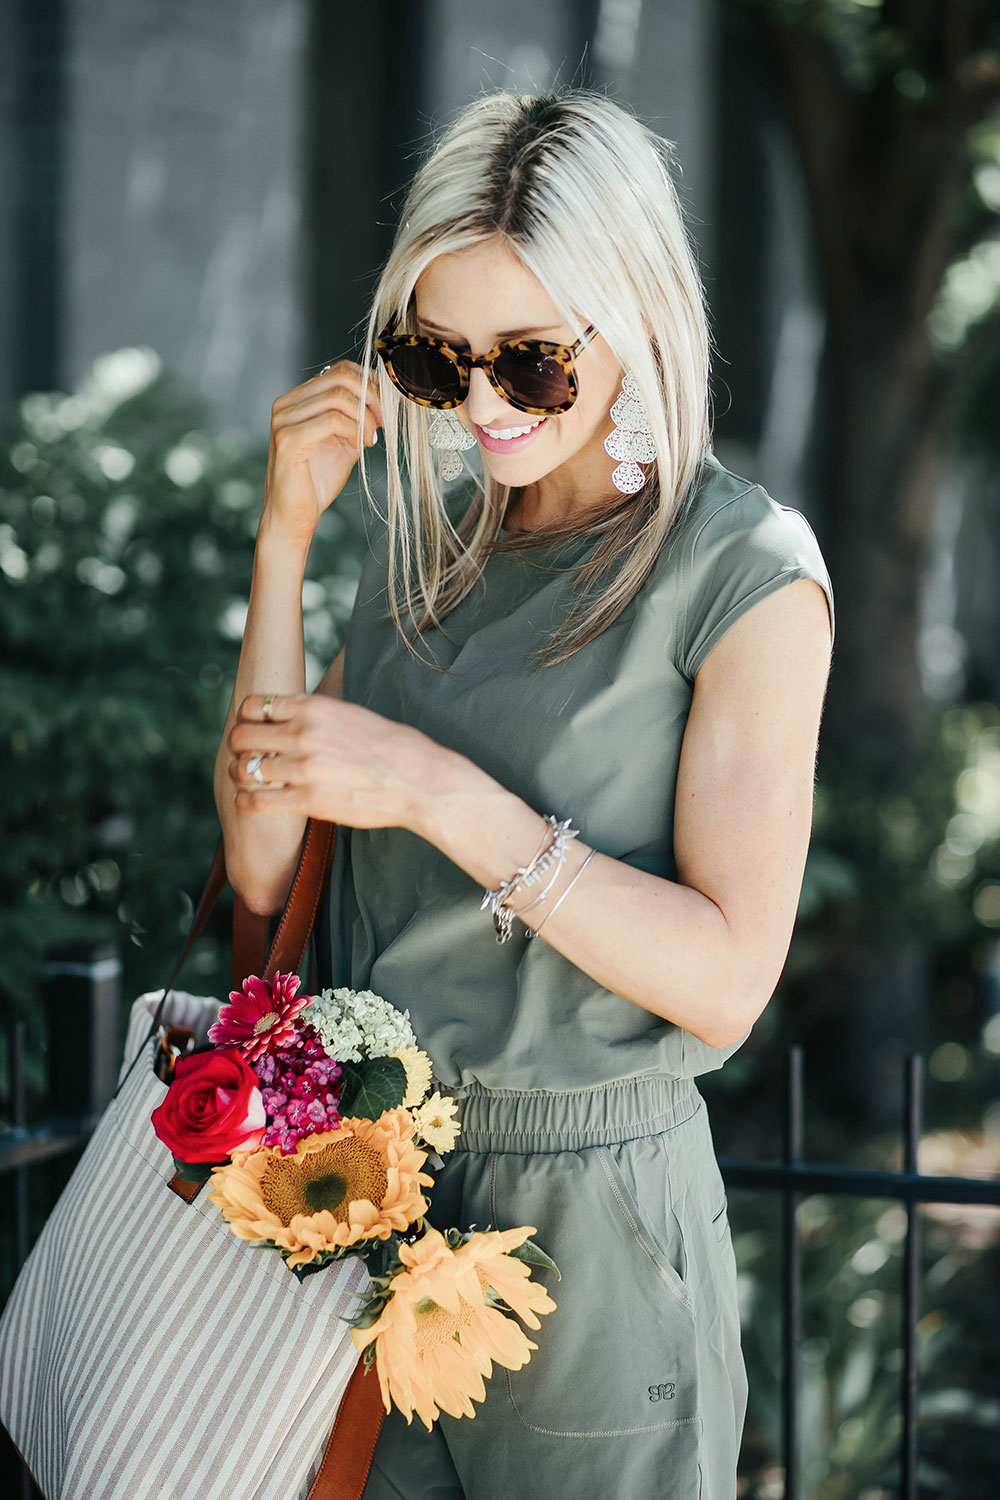 How to wear a jumpsuit 4 ways | summer outfit ideas | what to wear to a farmers market | how to style a jumpsuit | Little Miss Fearless